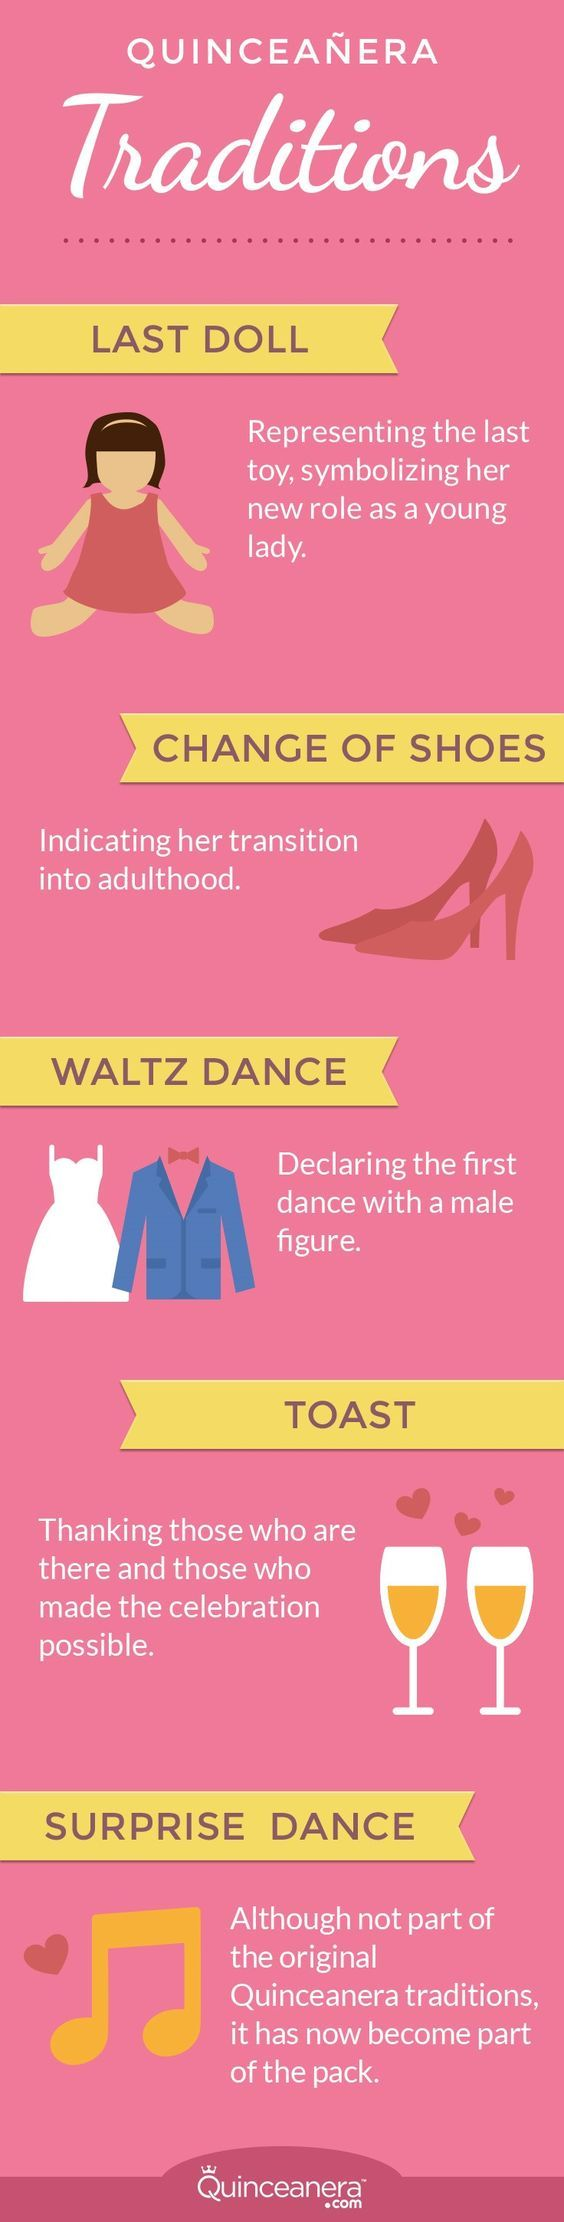 Why is it important to have a Quinceanera? http://www.quinceanera.com/traditions/the-celebration-of-the-quinceanera-and-its-origins/?utm_source=pinterest&utm_medium=social&utm_campaign=article-112315-traditions-the-celebration-of-the-quinceanera-and-its-origins: